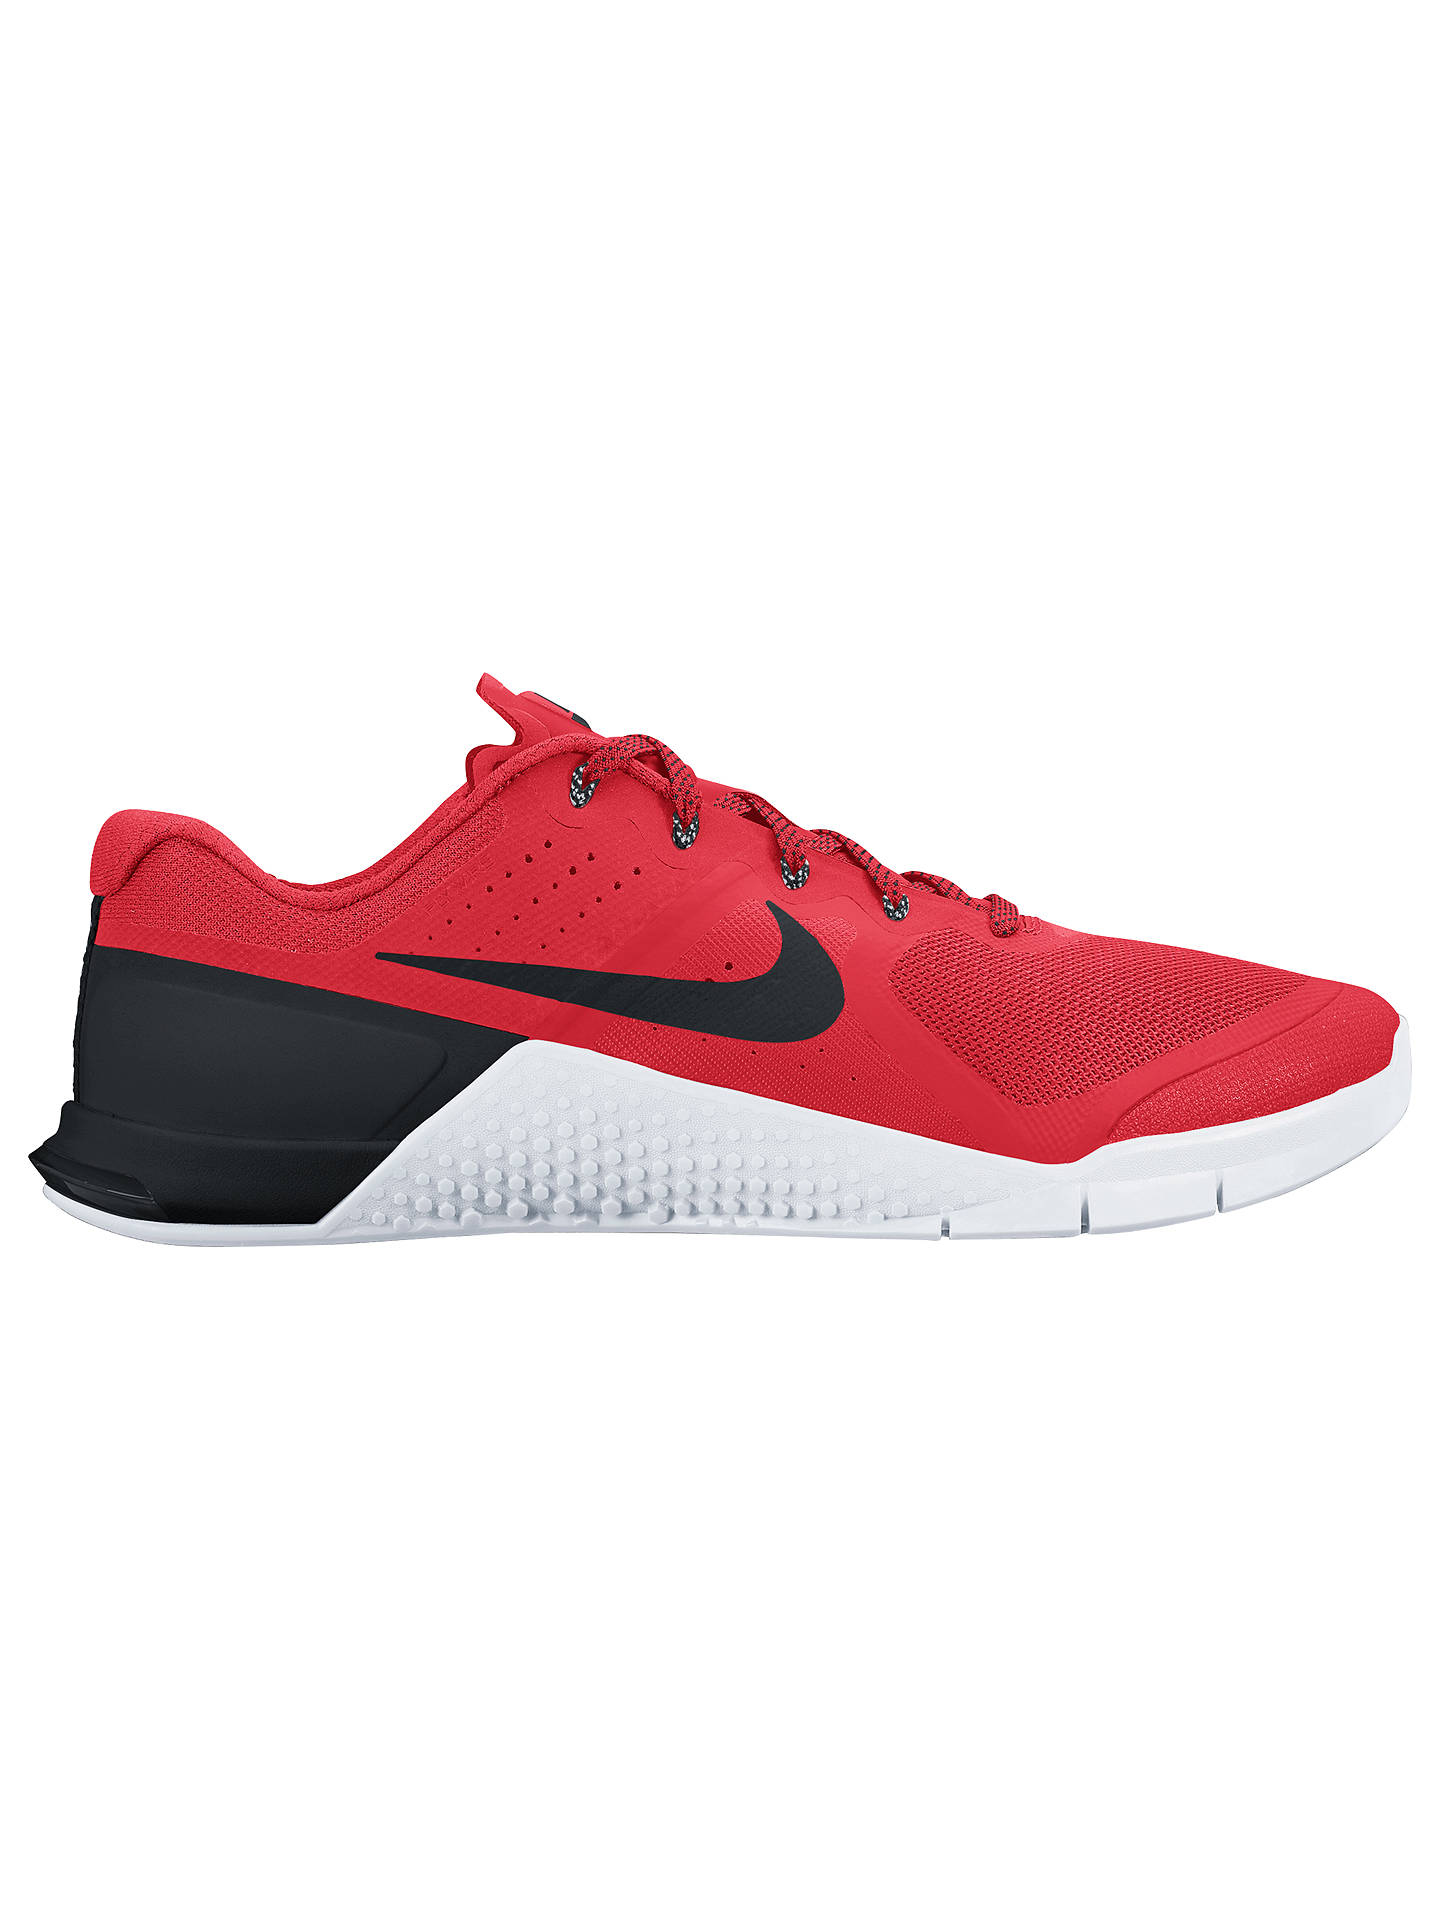 new style 4457e 4d4cb Buy Nike Metcon 2 Men s Cross Trainers, Action Red Black, 7 Online at ...